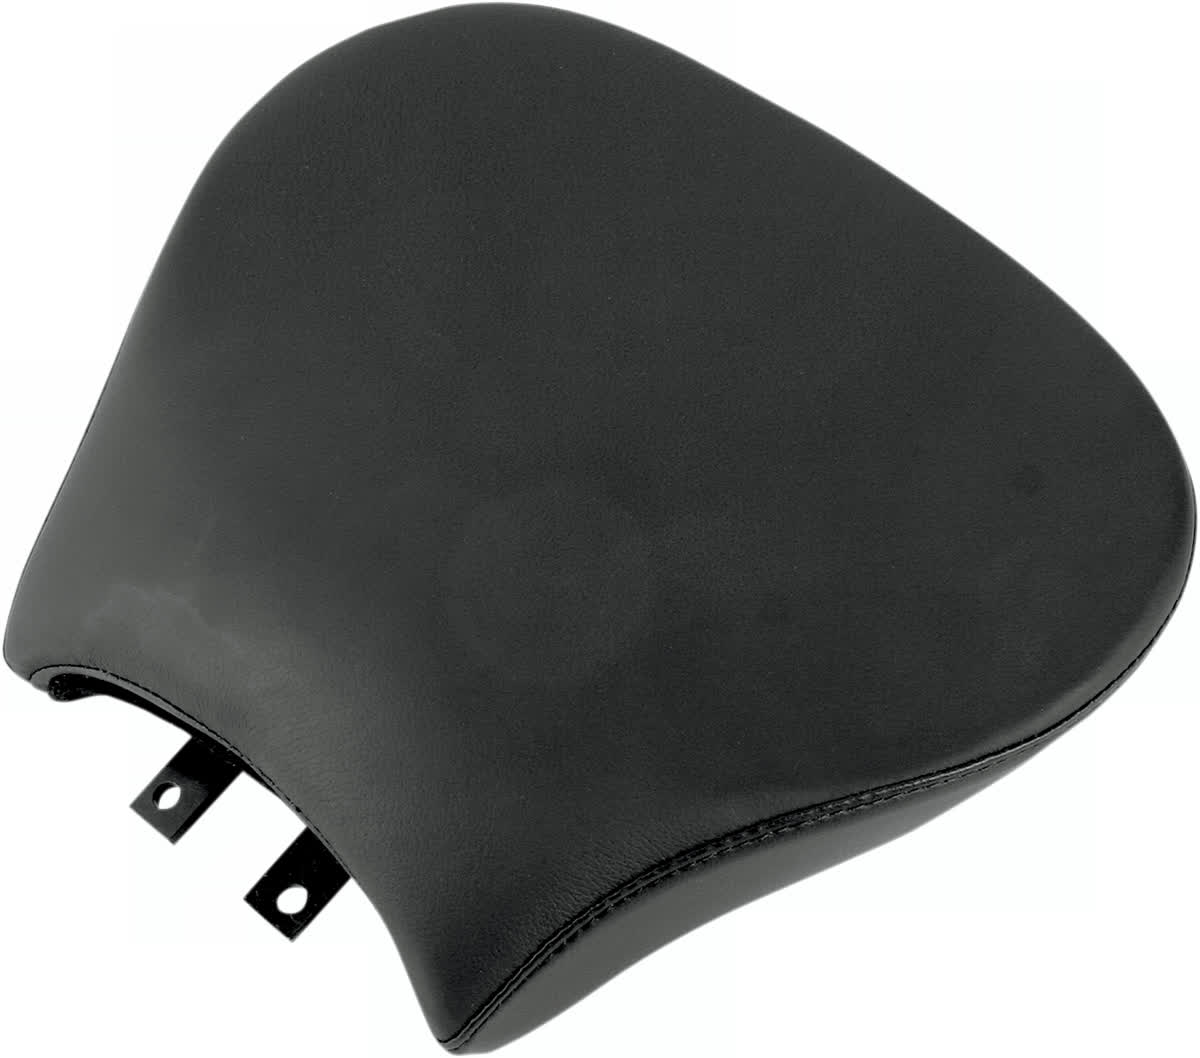 Danny Gray 1110 X-Large Pillion Pad for Bigseat Backrest Seats